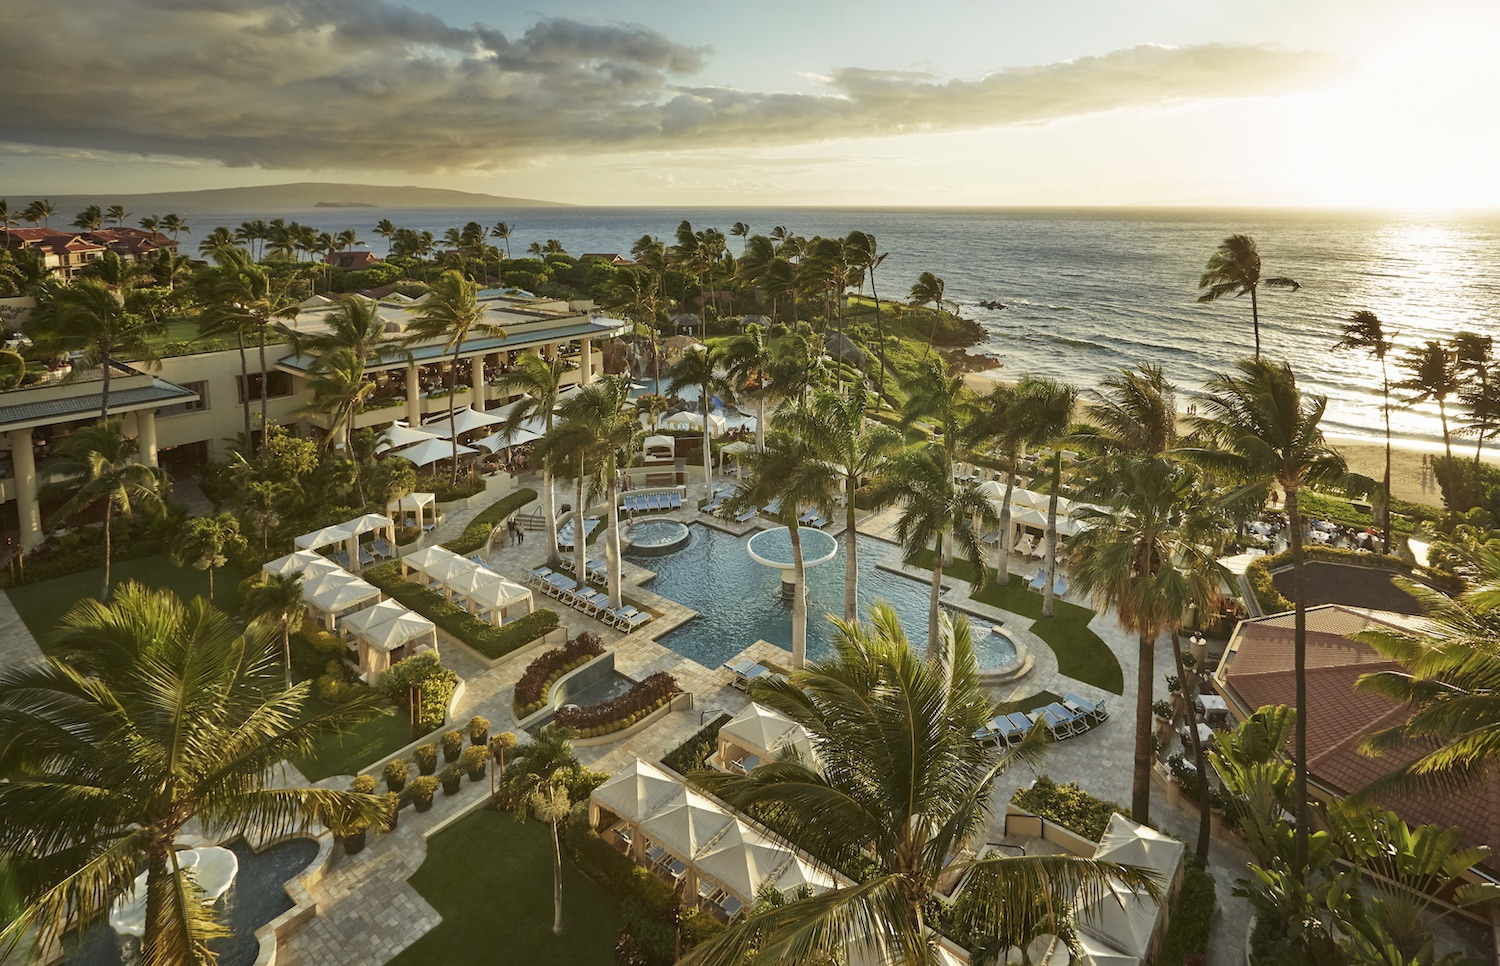 Four Seasons Resort Maui - Experience More - Nightly Resort Credit*Read my review